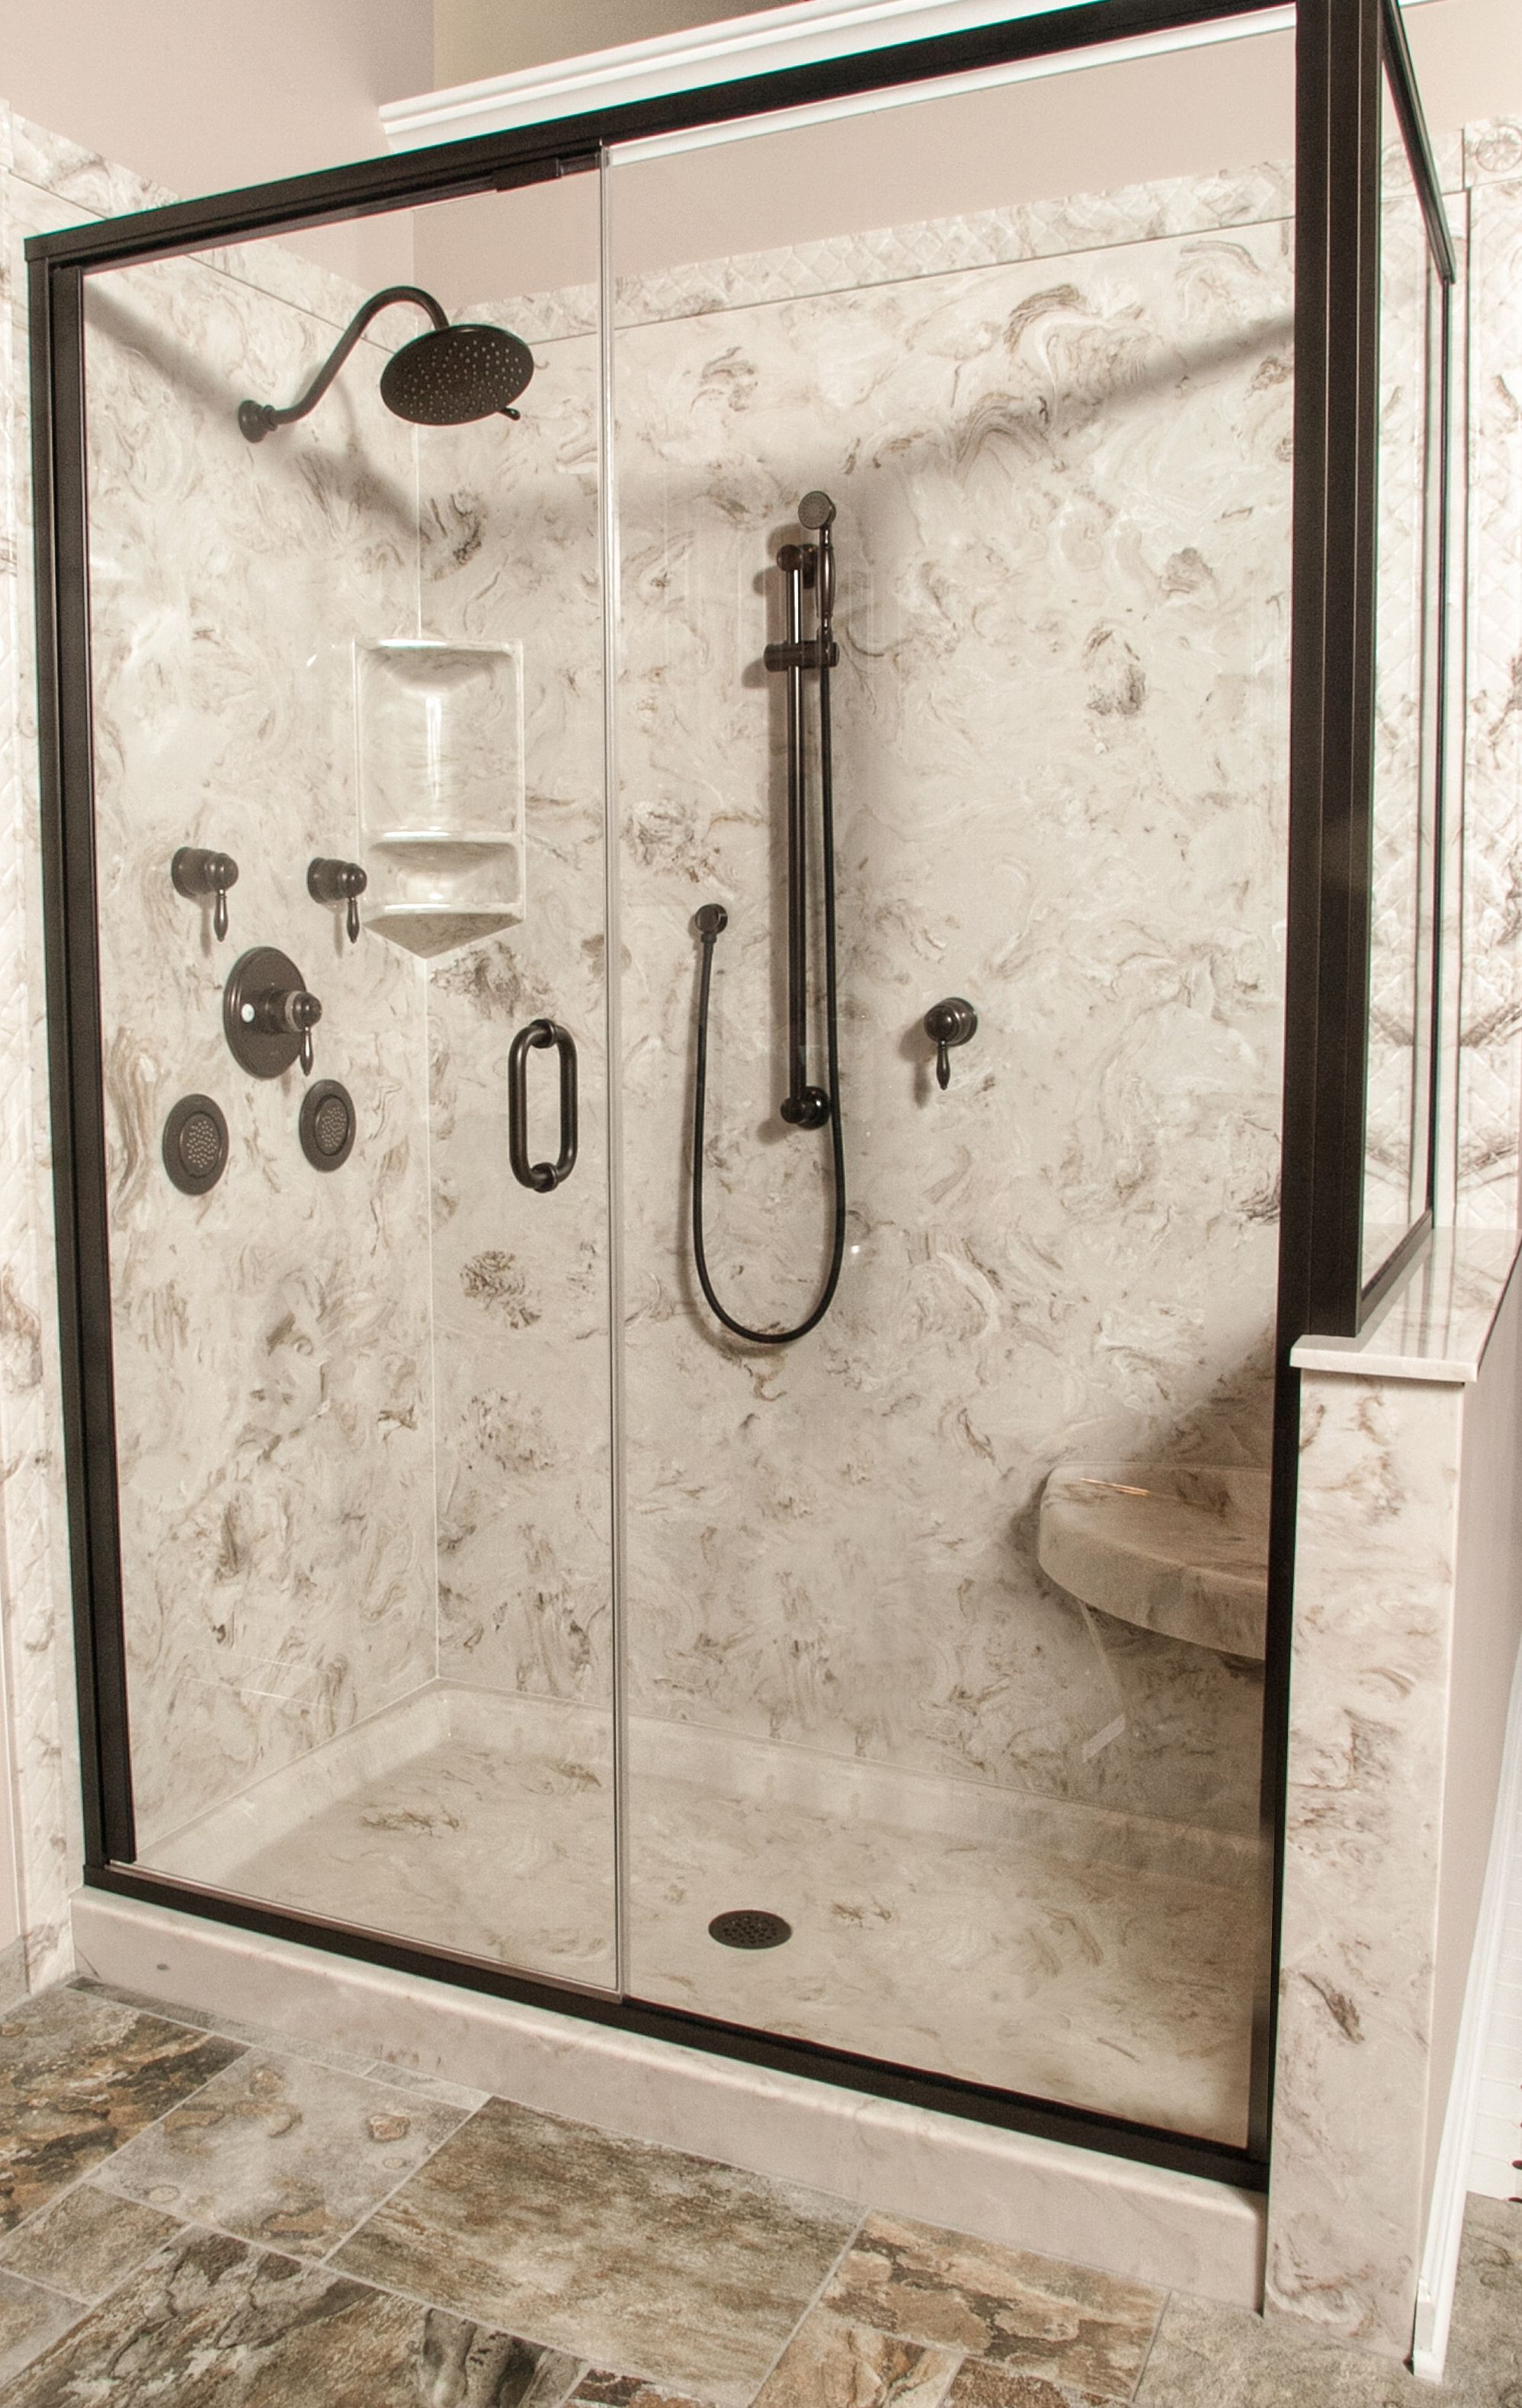 Corner Shower With Seat.Cultured Marble Shower With Corner Seat Decorative Edge